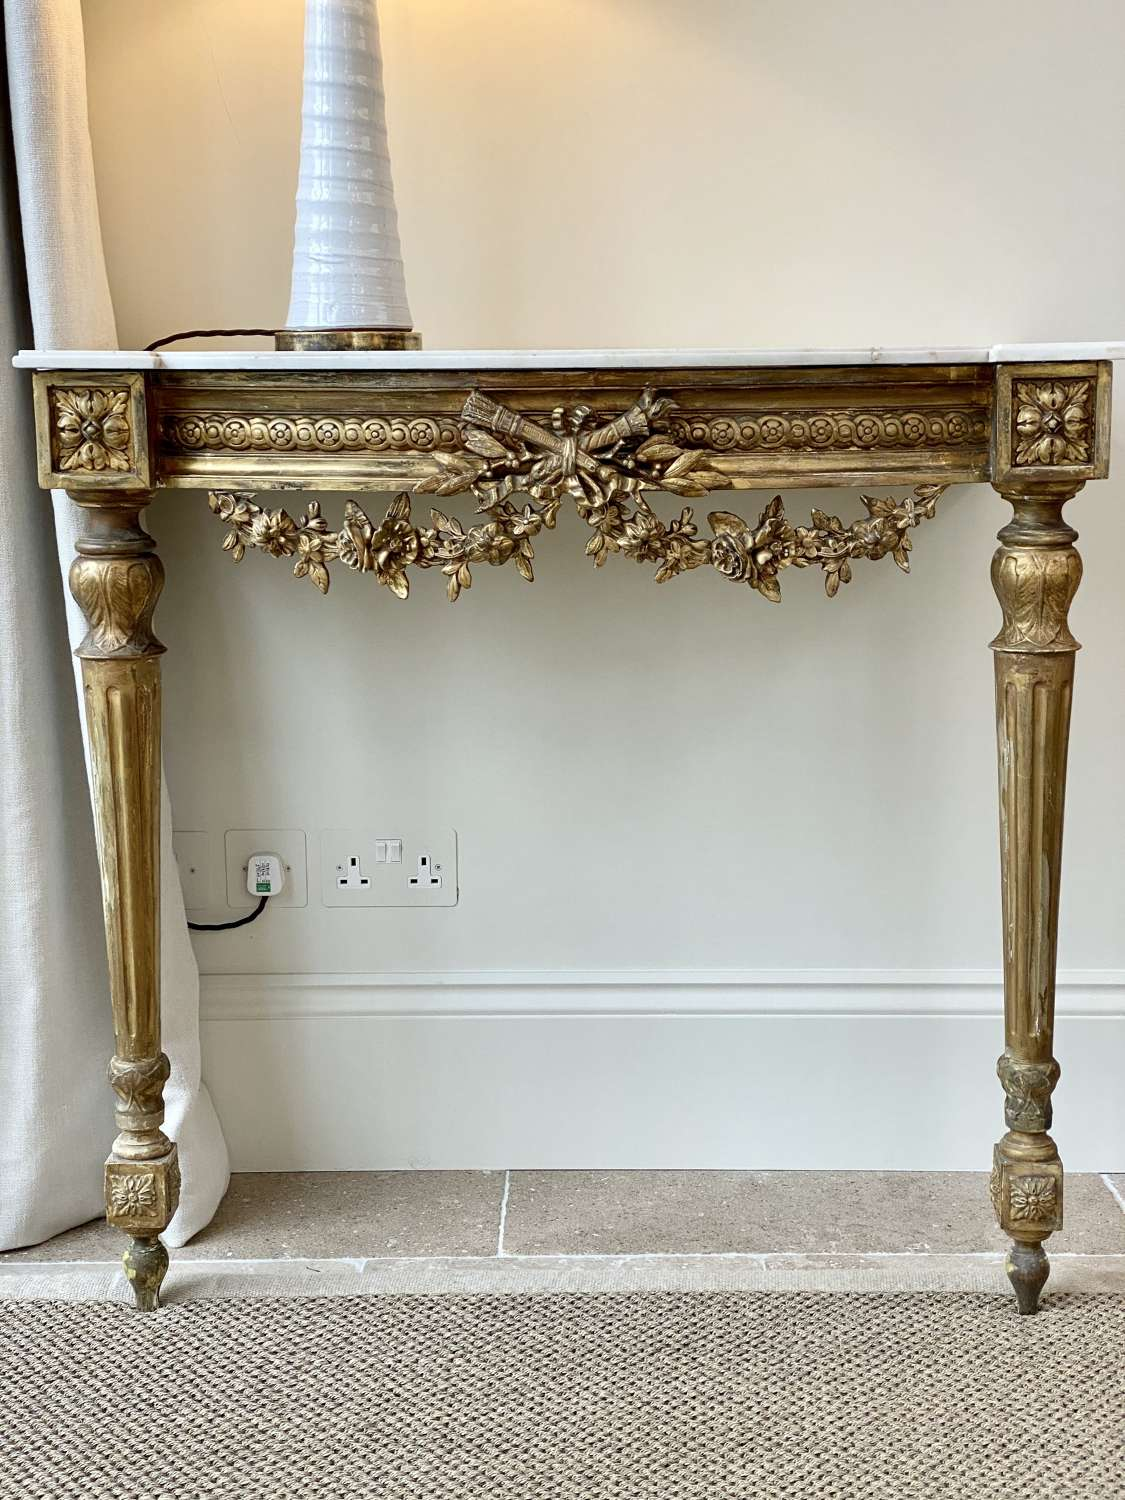 19th Century French neoclassical giltwood and marble console table